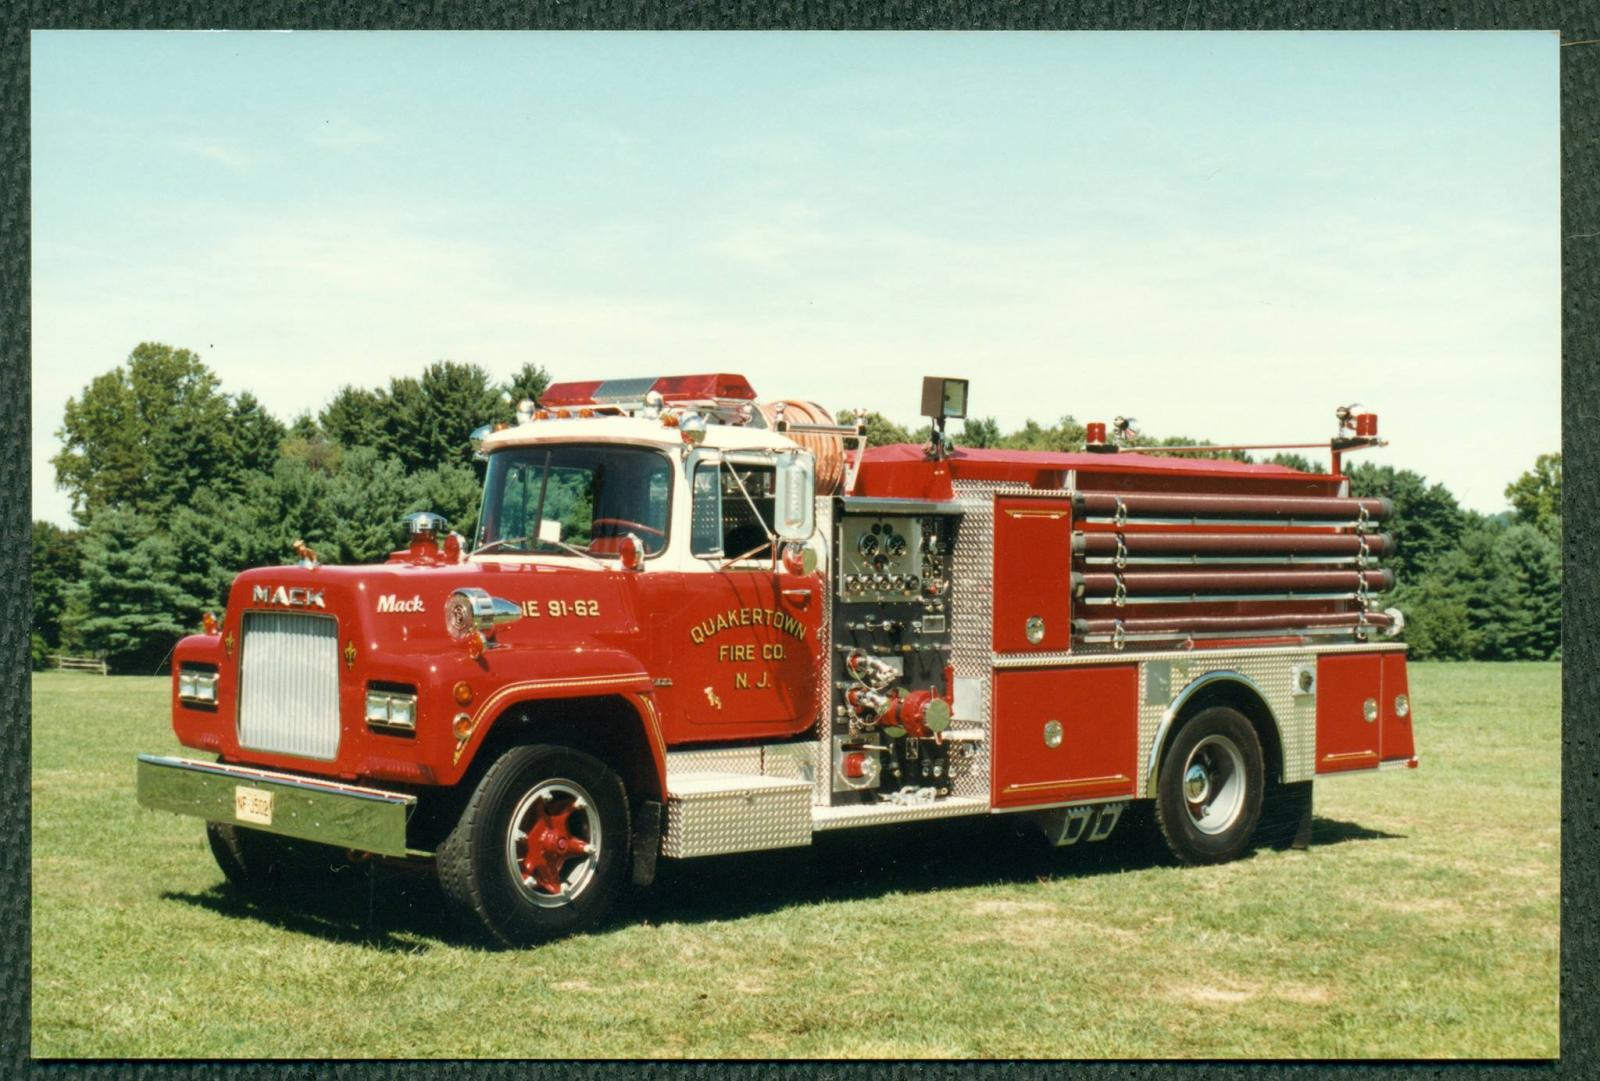 1973 Mack Tractor Truck : Looking for mack r fire truck antique and classic